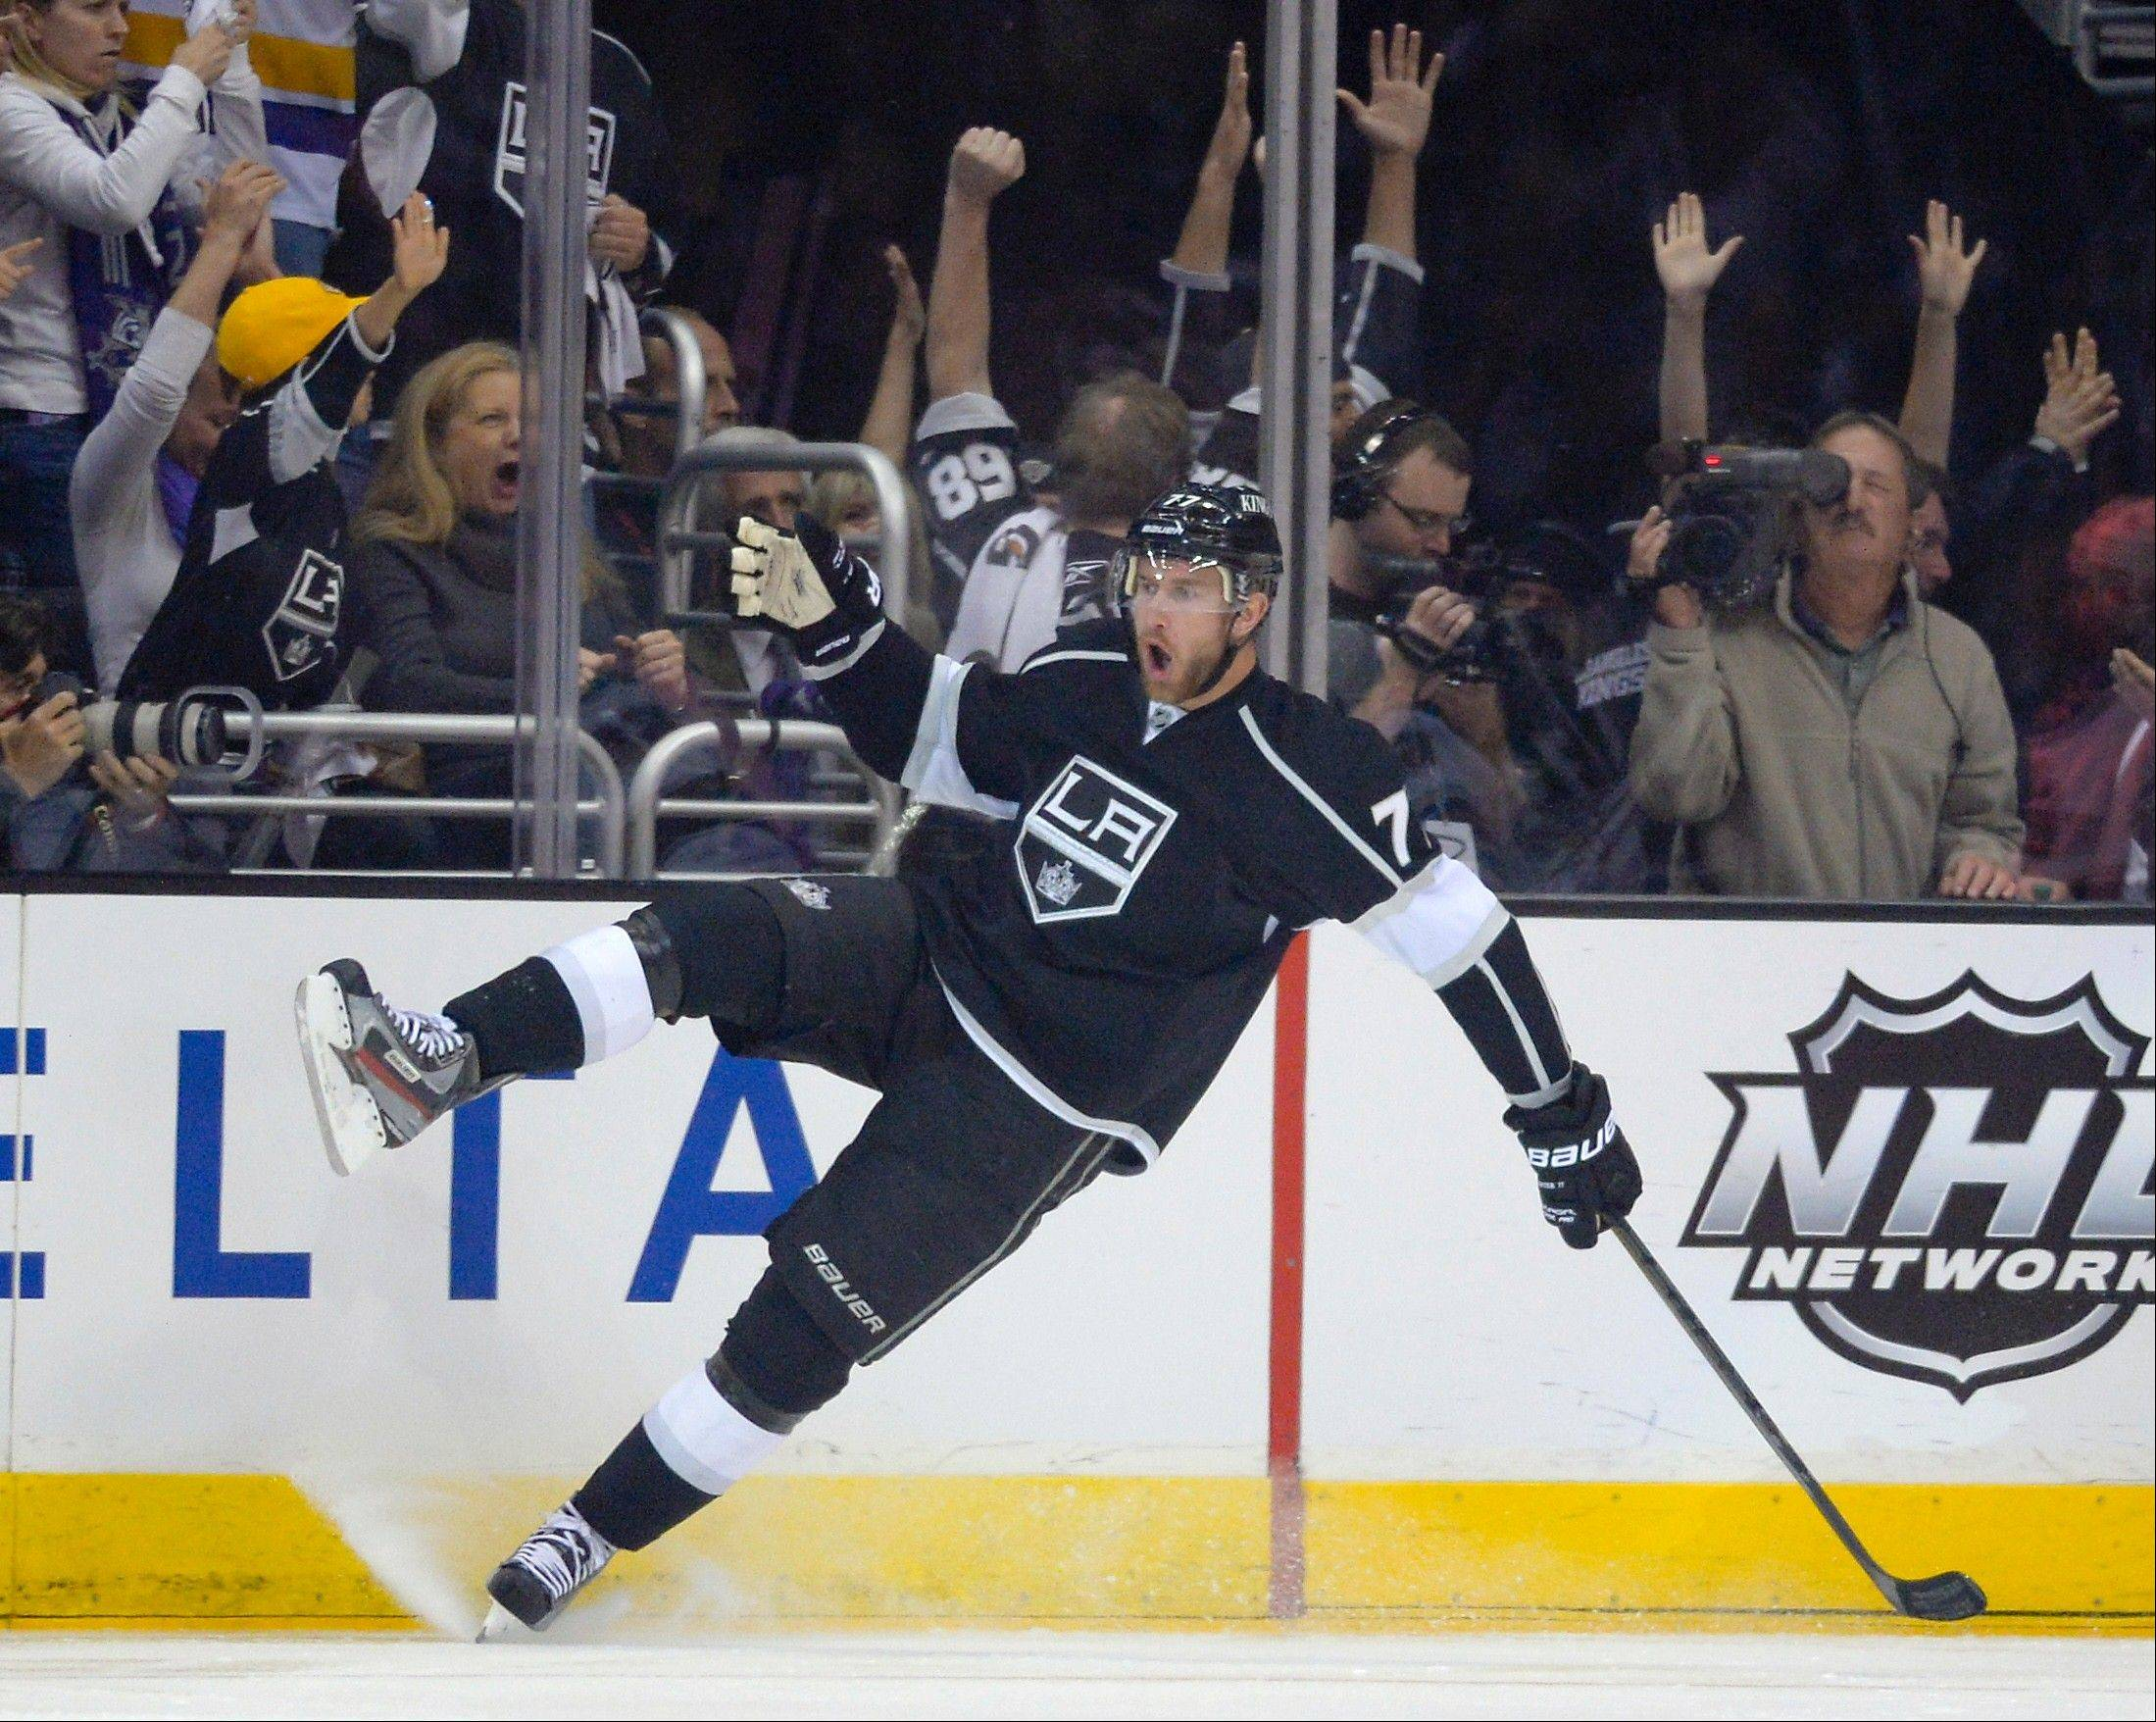 Los Angeles Kings center Jeff Carter celebrates his goal against the San Jose Sharks during the first period in Game 2 of a second-round NHL hockey Stanley Cup playoff series, Thursday, May 16, 2013, in Los Angeles.